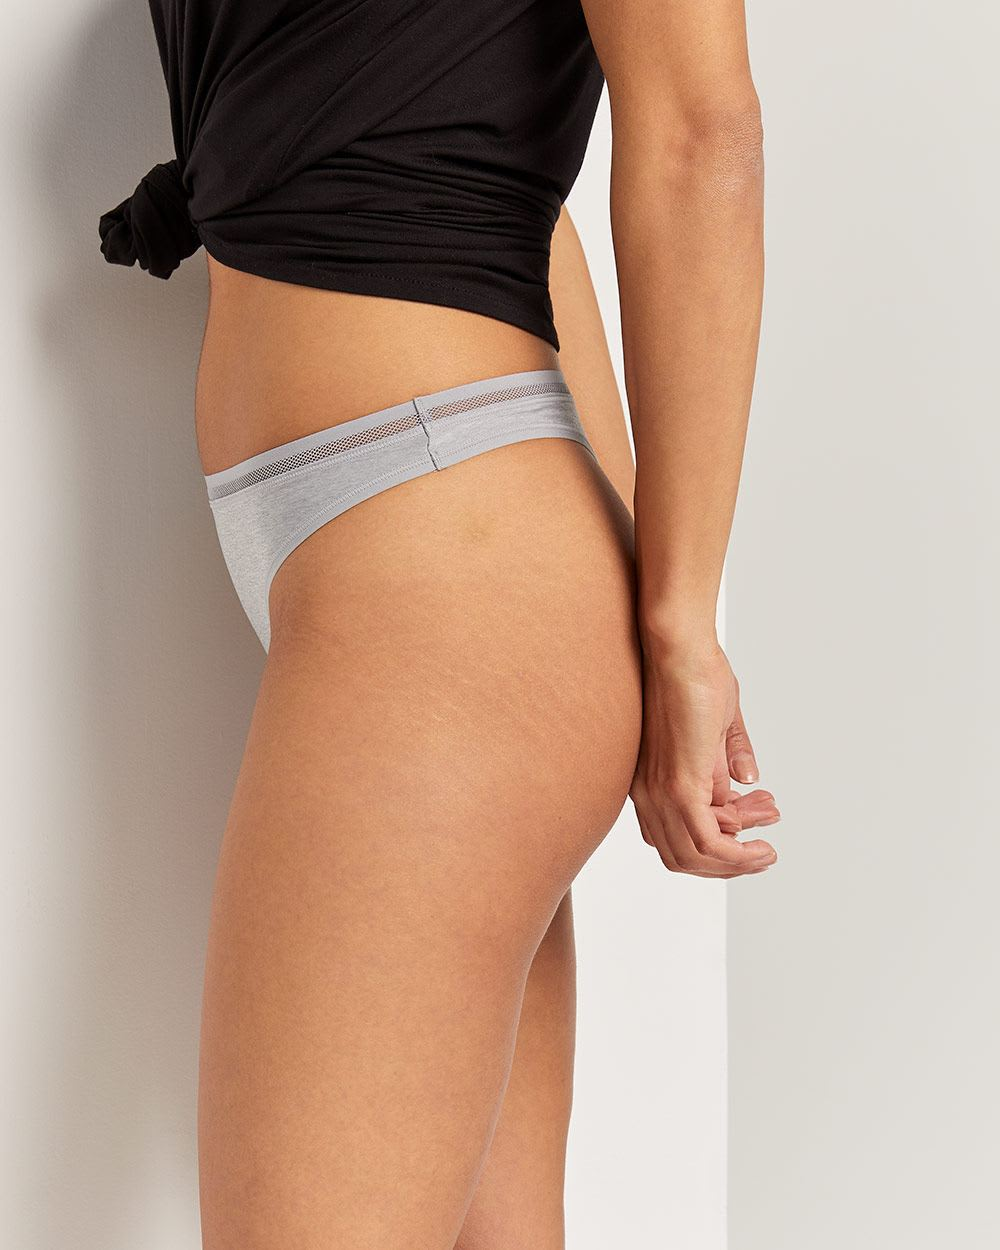 Microfiber Thong Panty with Mesh